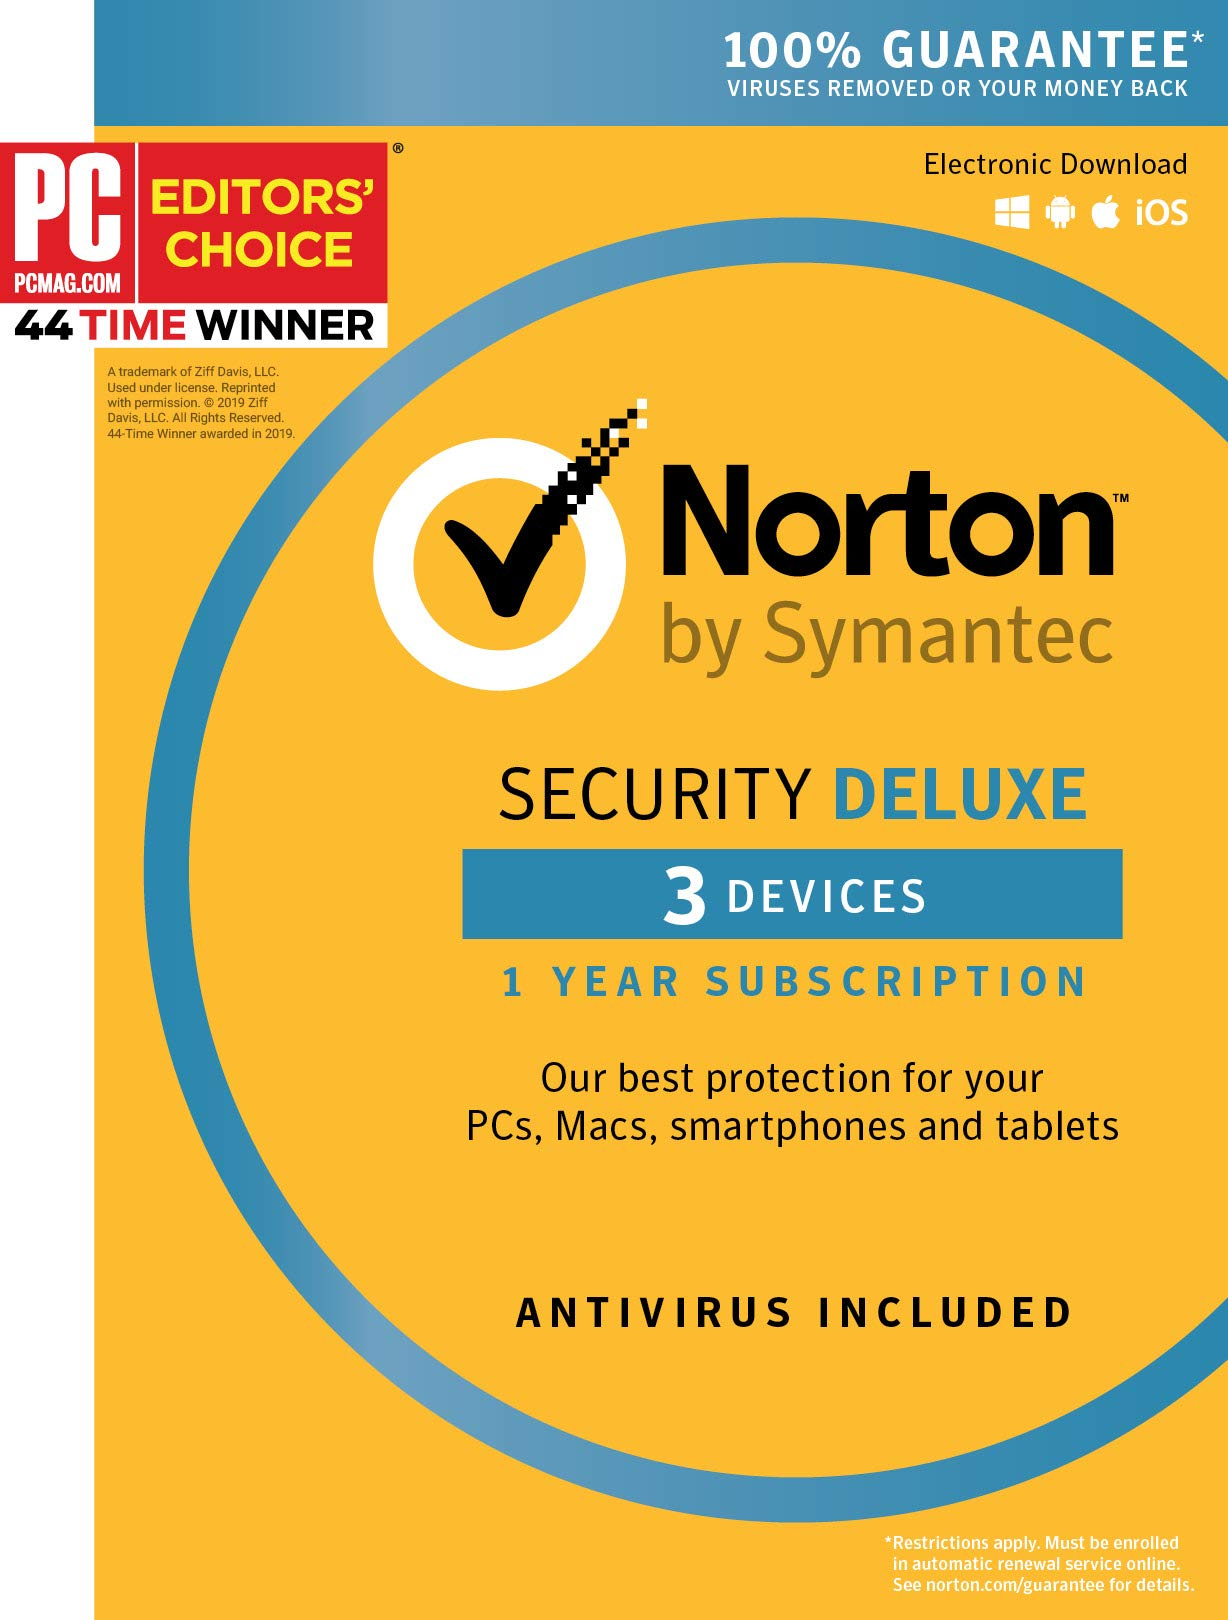 Symantec Norton Security Deluxe - 3 Devices - 1 Year Subscription [PC/Mac/Mobile Key Card] by Symantec